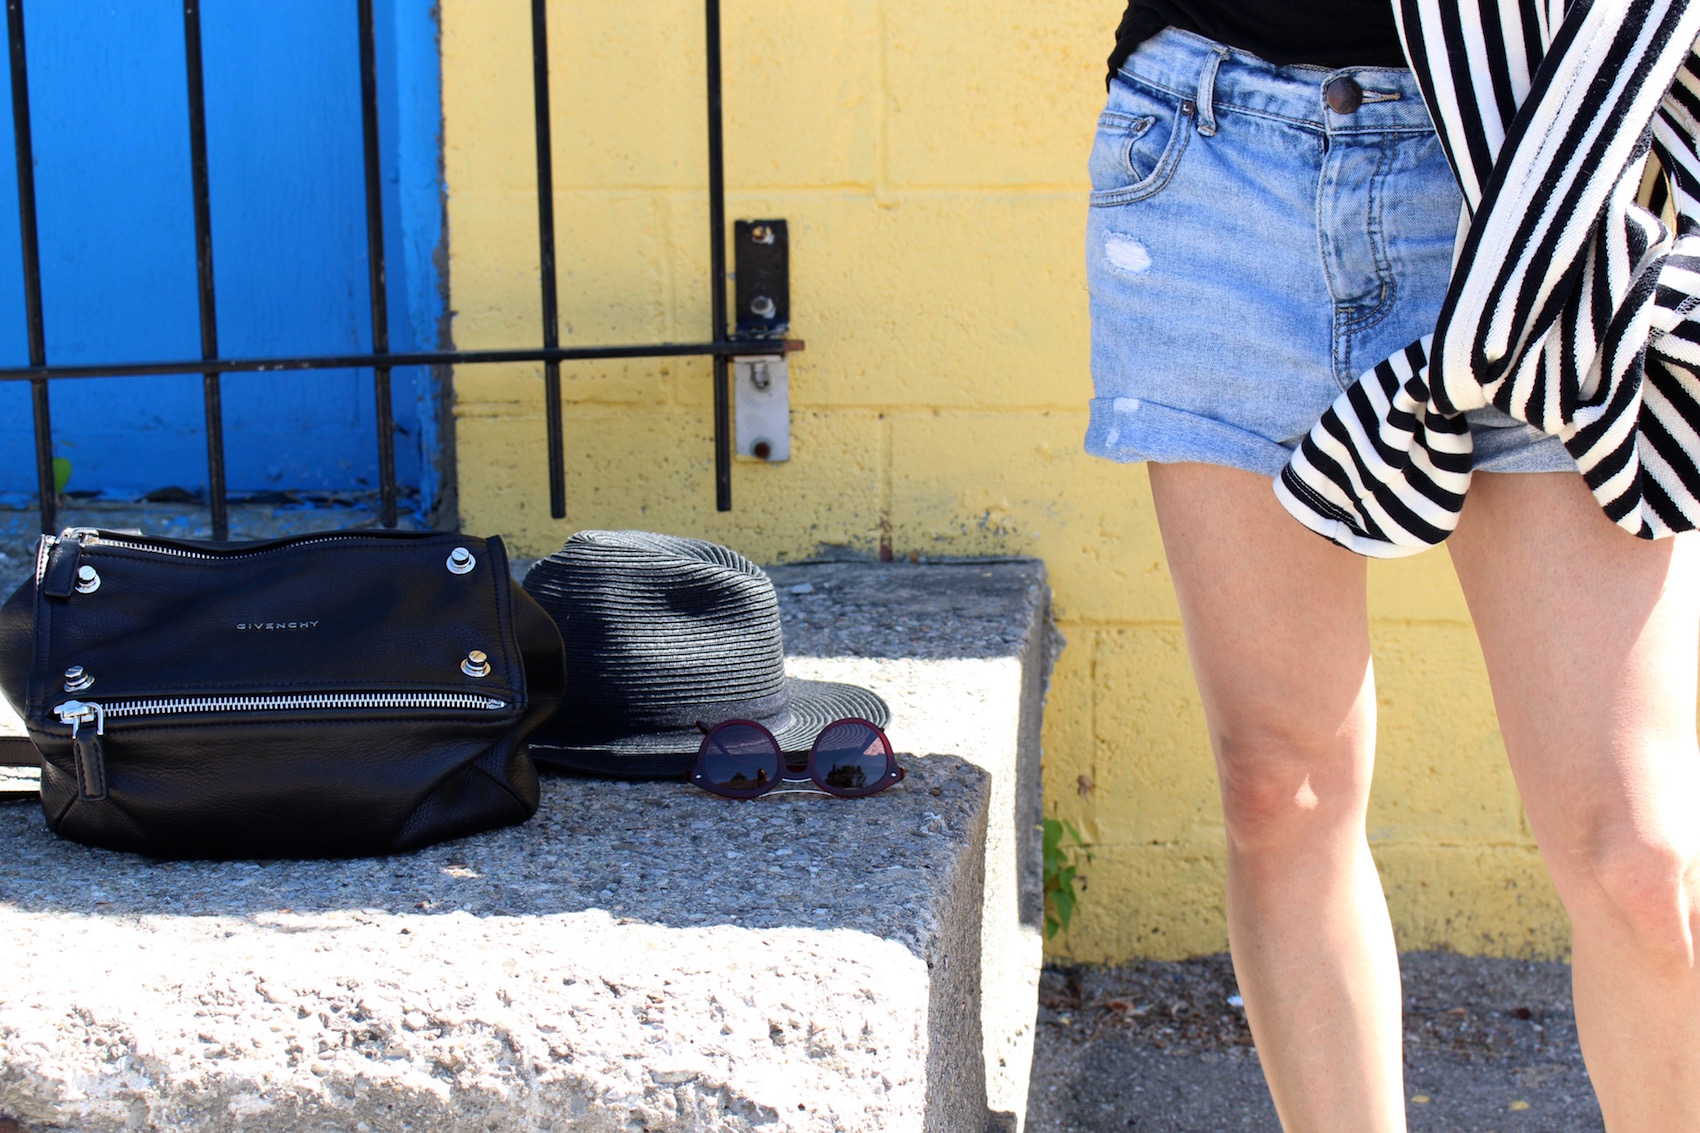 WoahStyle.com - Road Trip Style Summer_Isabel Marant  Ralf Harness Black Ankle Boots_ Small Givenchy Pandora with Studs _ Forever 21 Striped Sweater_ Brandy Melville black tank_Free People Boyfriend Shorts_Street Style_5116.jpg